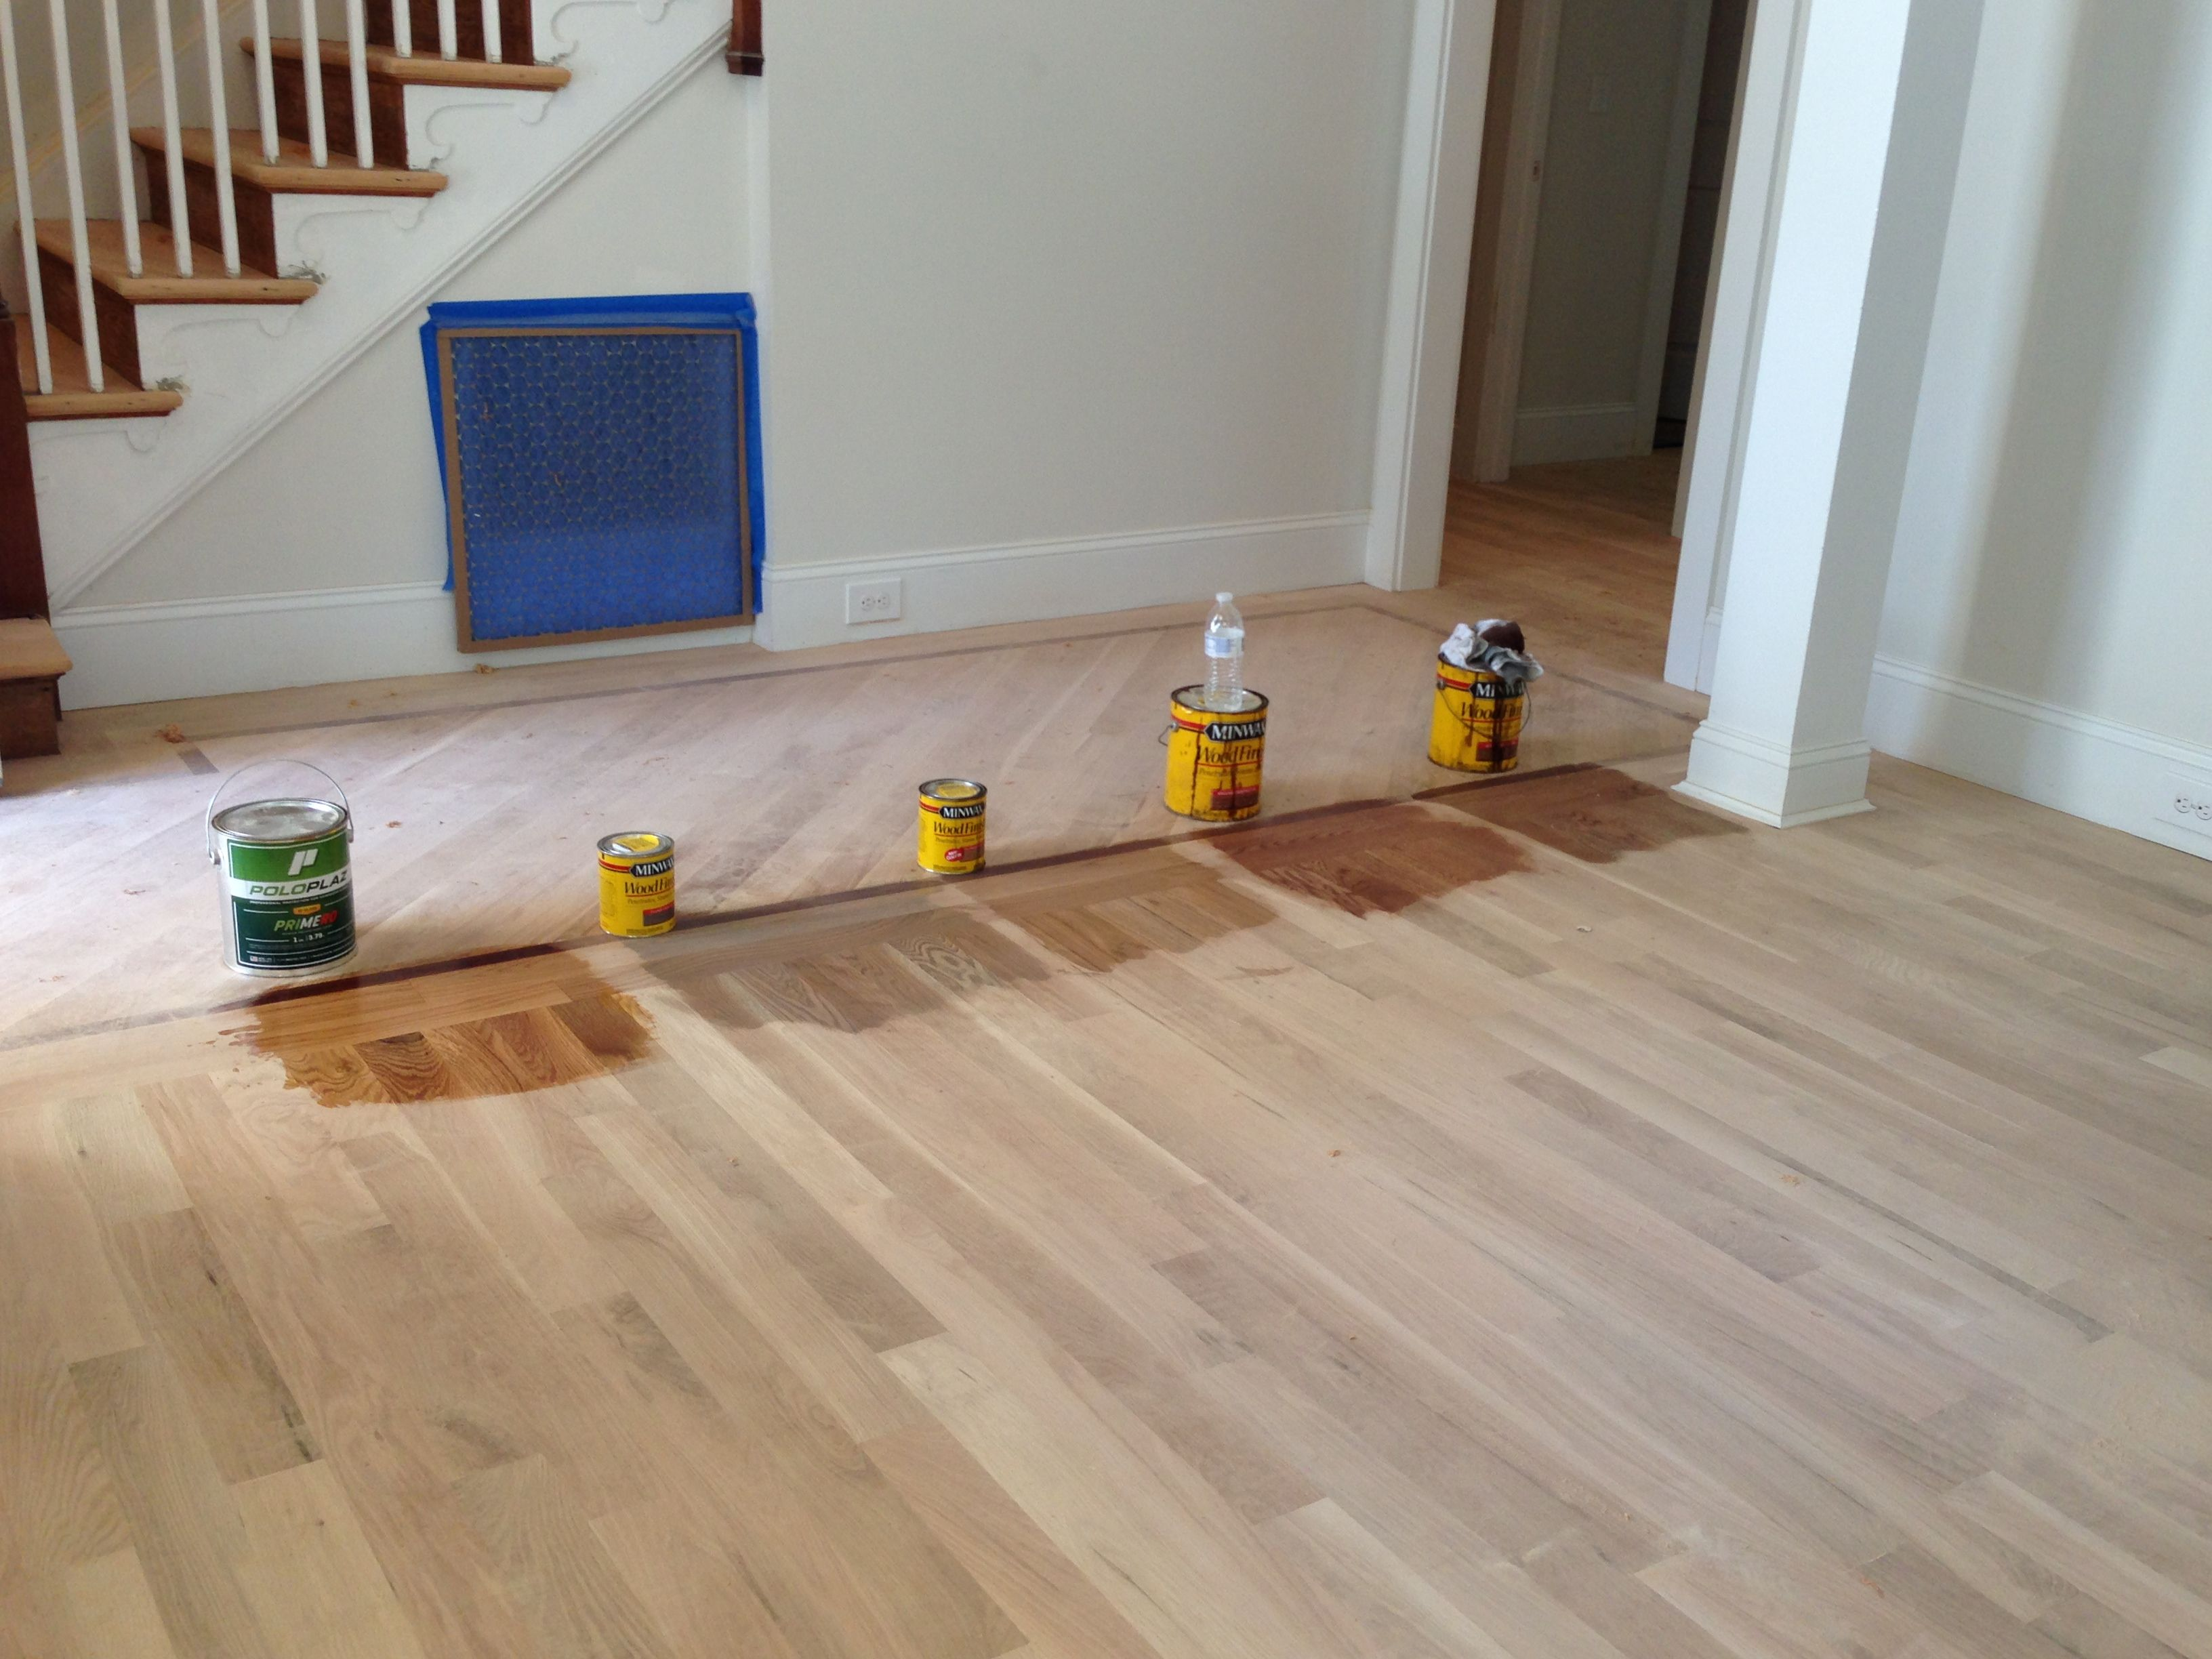 Minwax floor stains for White Oak flooring: far left, just